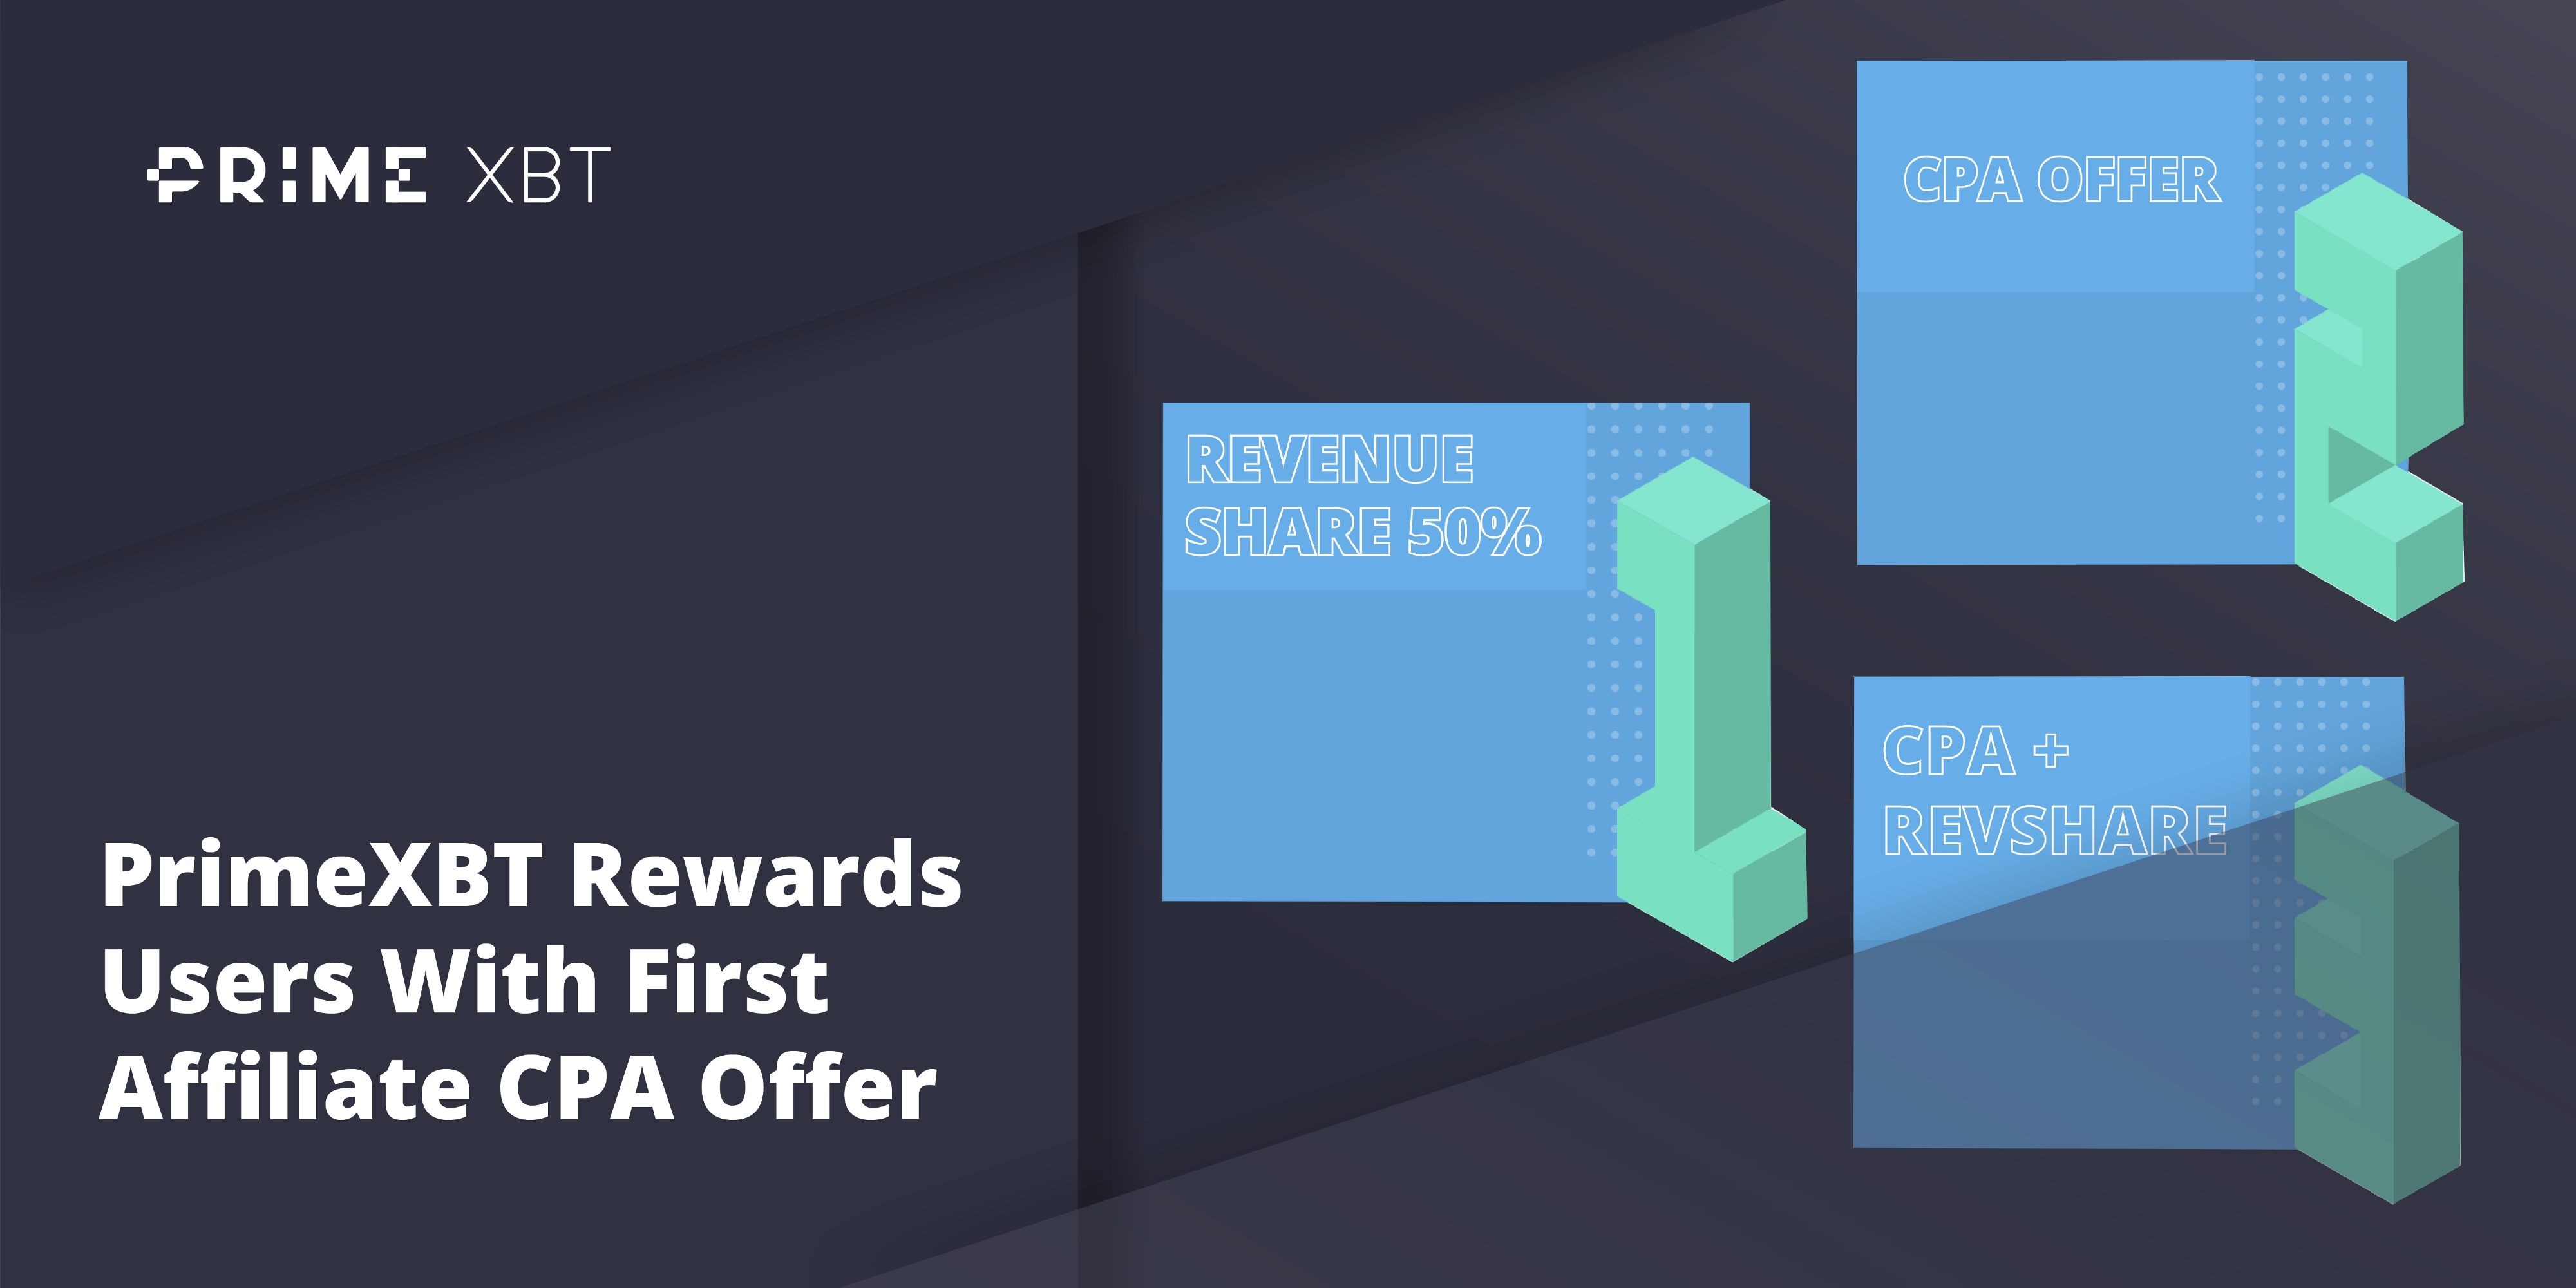 PrimeXBT Rewards Users With First Affiliate CPA Offer - 31.10.19 Blog Rewards